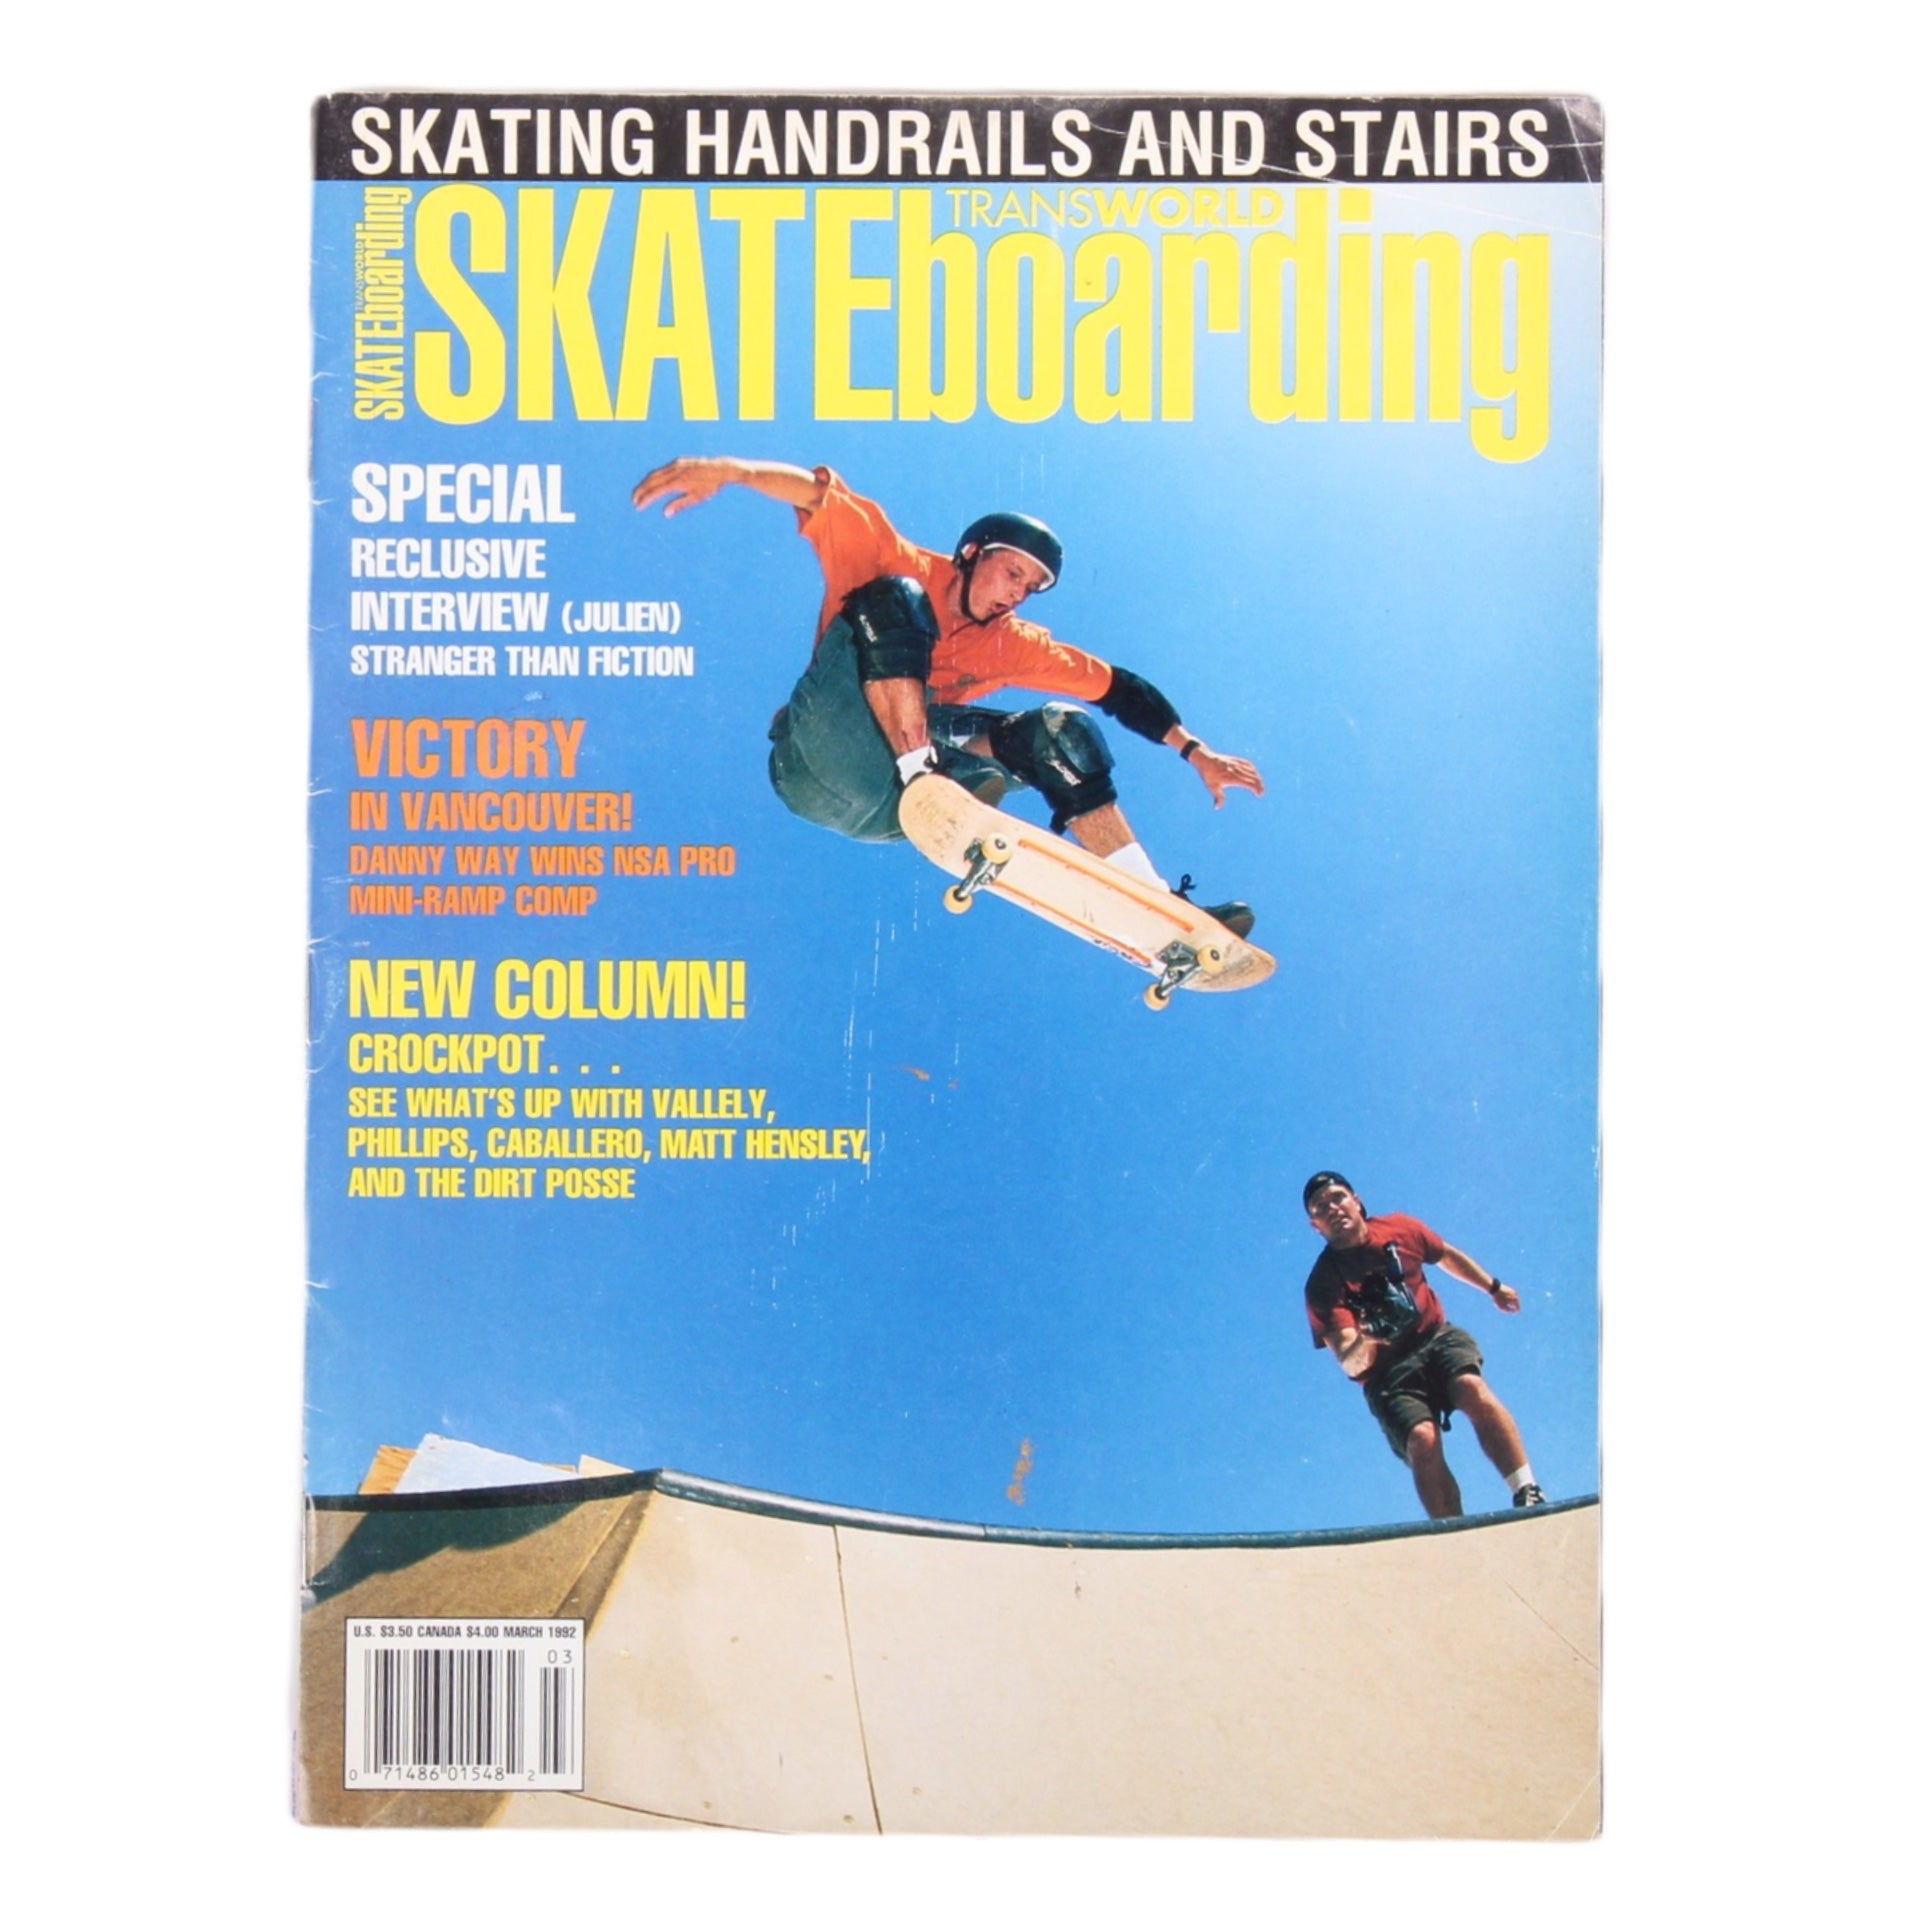 Overripe Transworld Skateboarding Magazine TWS March 1992